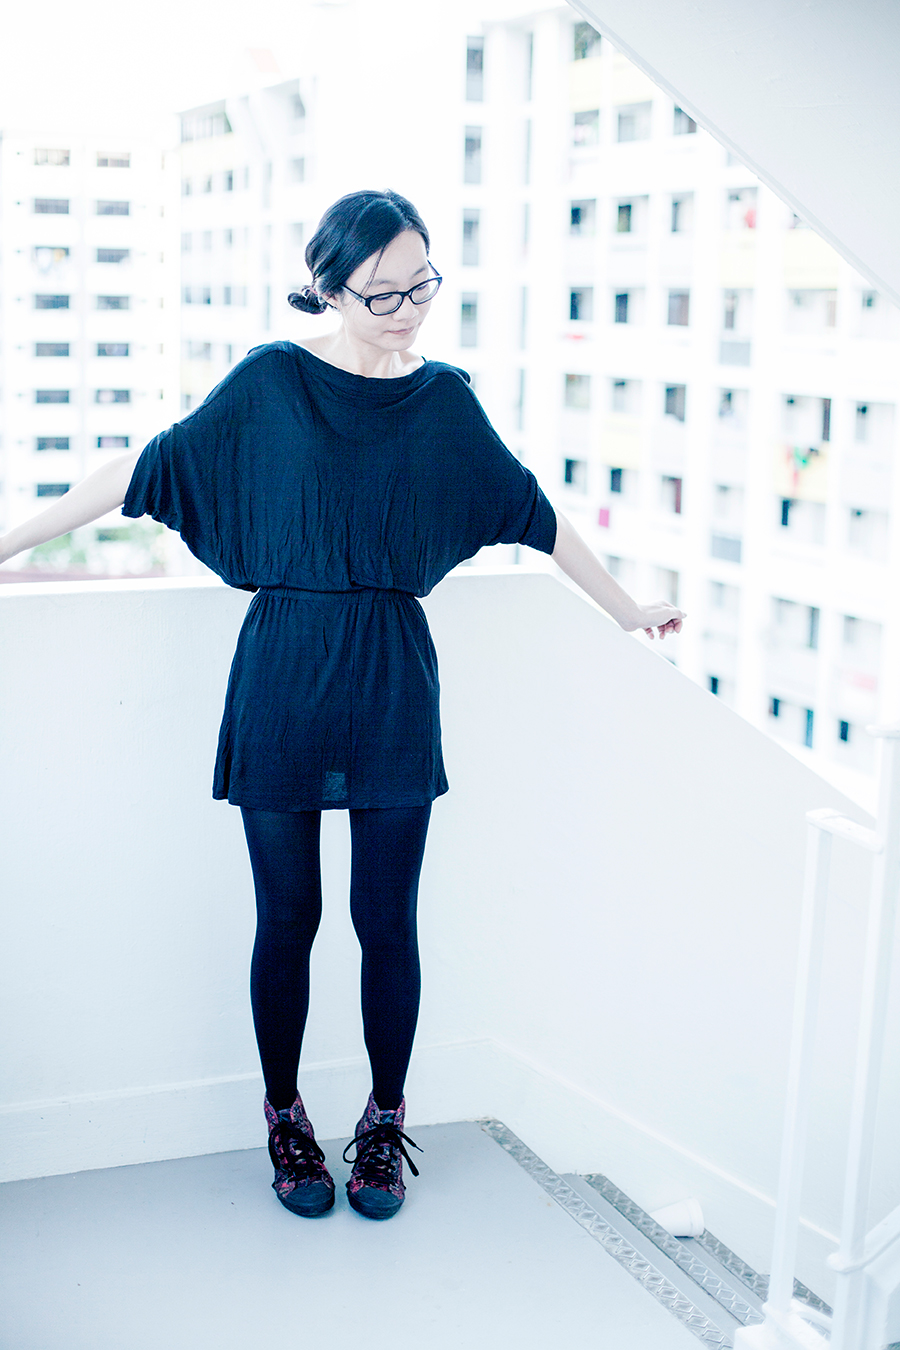 Monochroma outfit: M)phosis black tunic dress, Alexander McQueen x Puma high top sneakers, Gap black frame glasses.